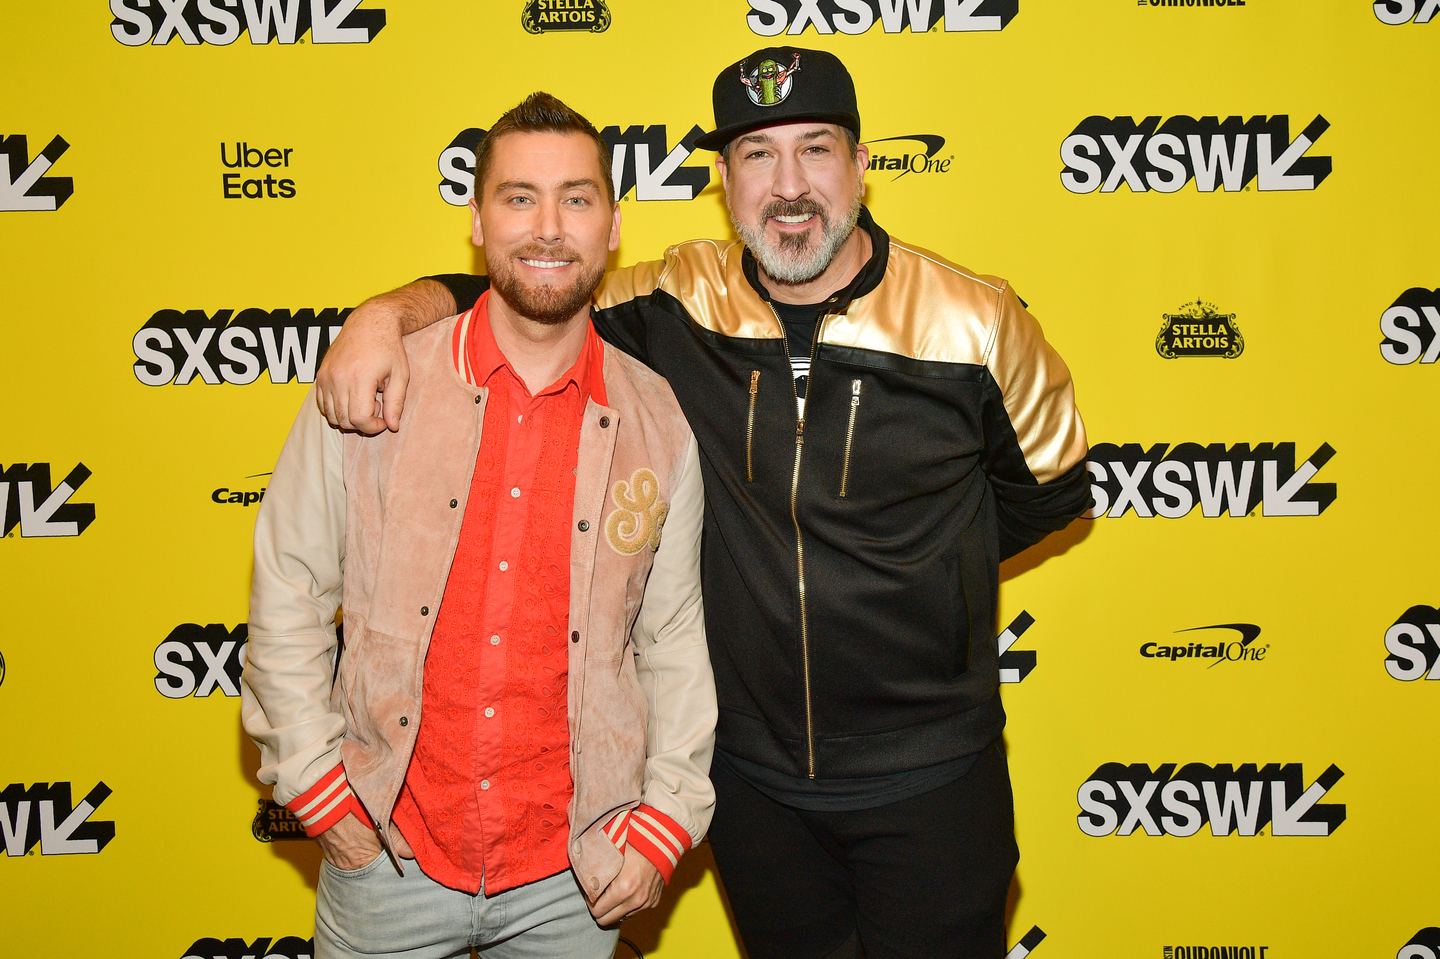 Lance Bass and Joey Fatone attend the premiere of The Boy Band Con: The Lou Pearlman Story at the Paramount Theatre.